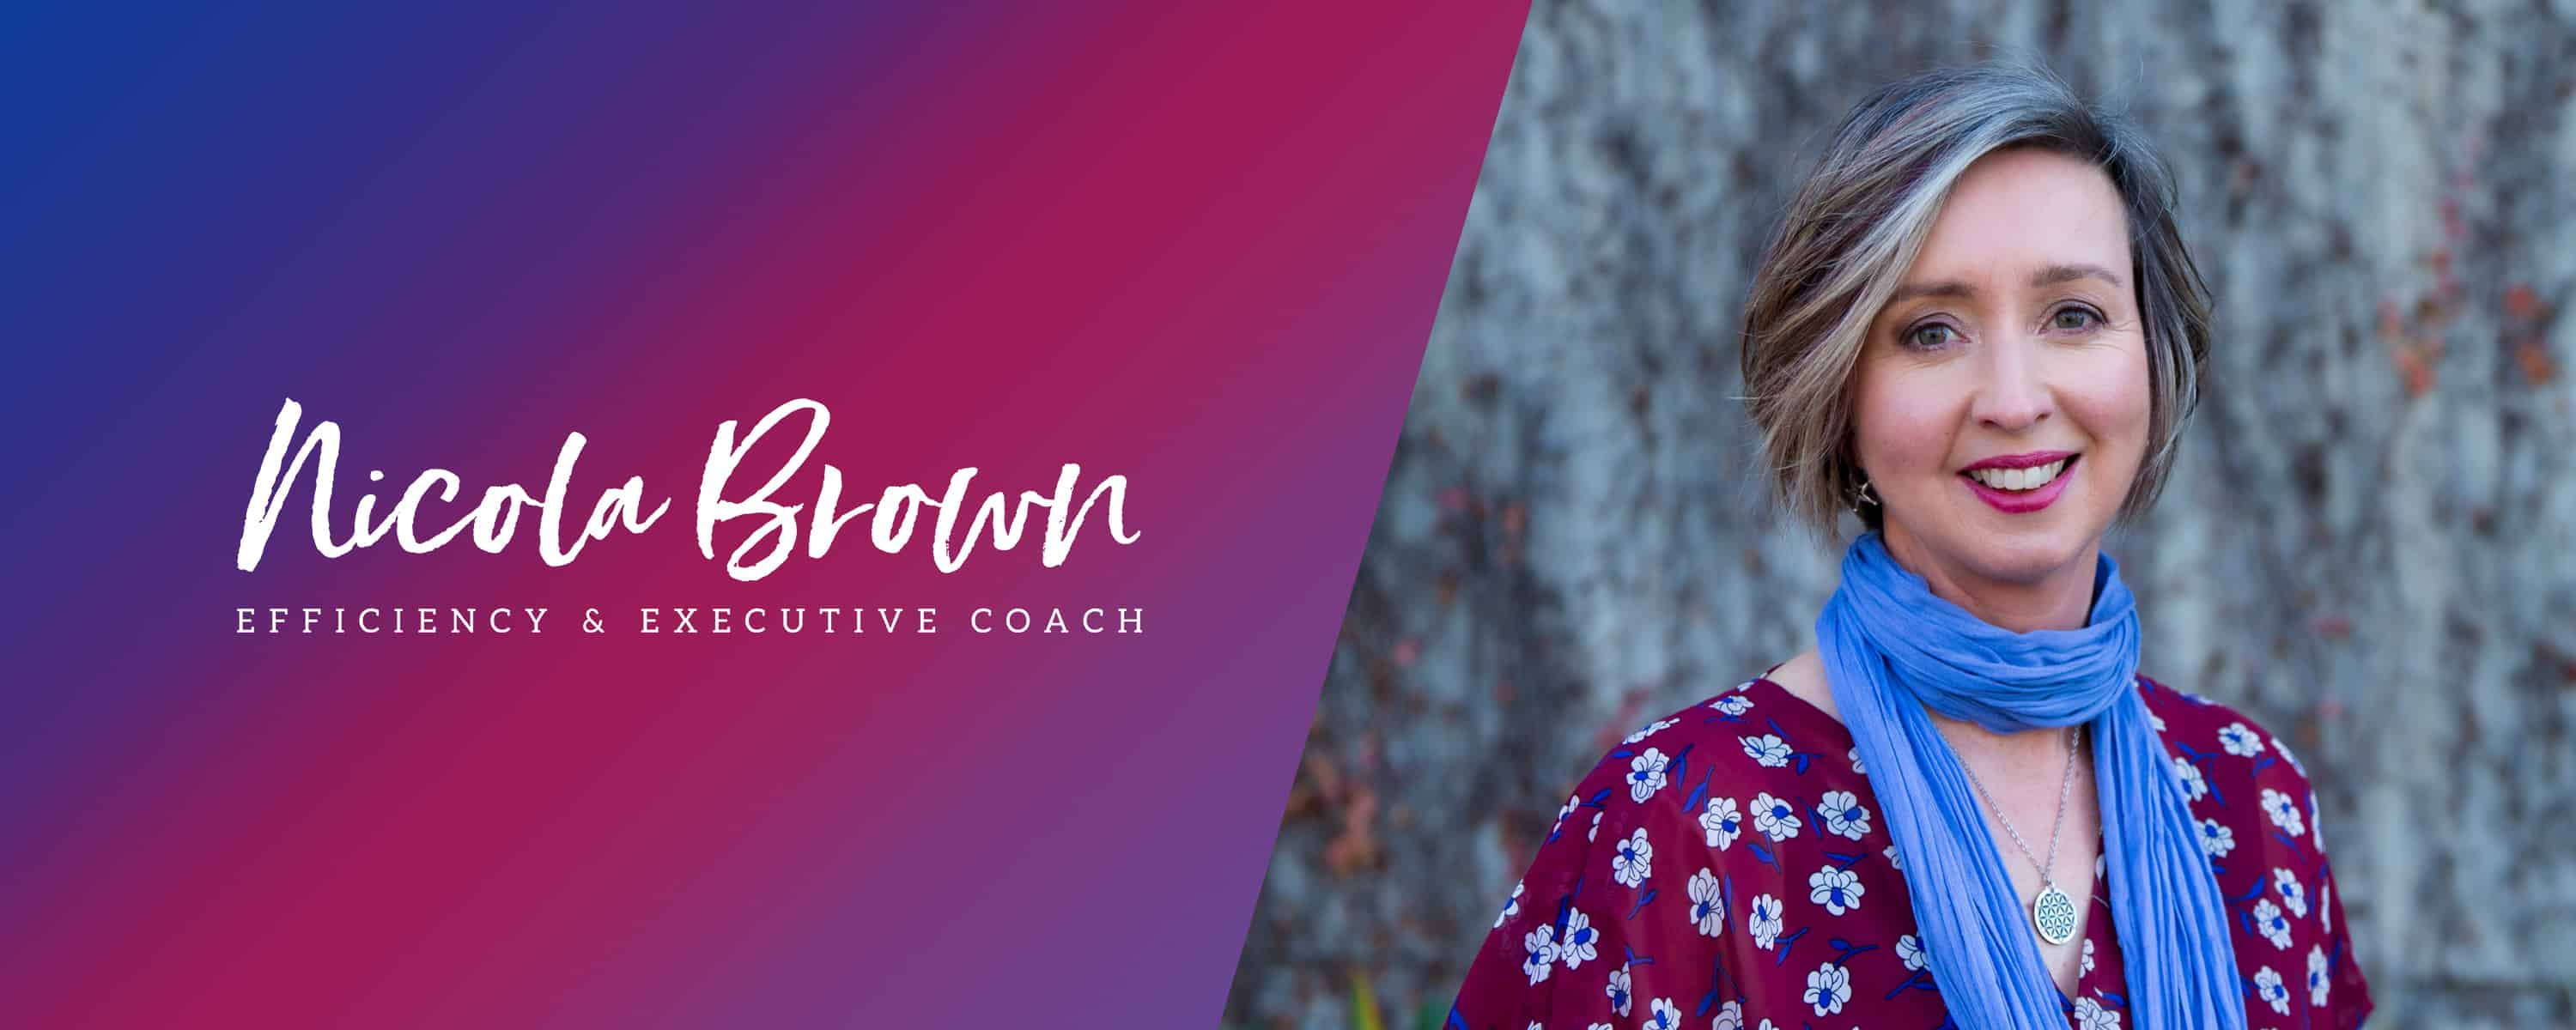 Nicola Brown-2019 web banner 4